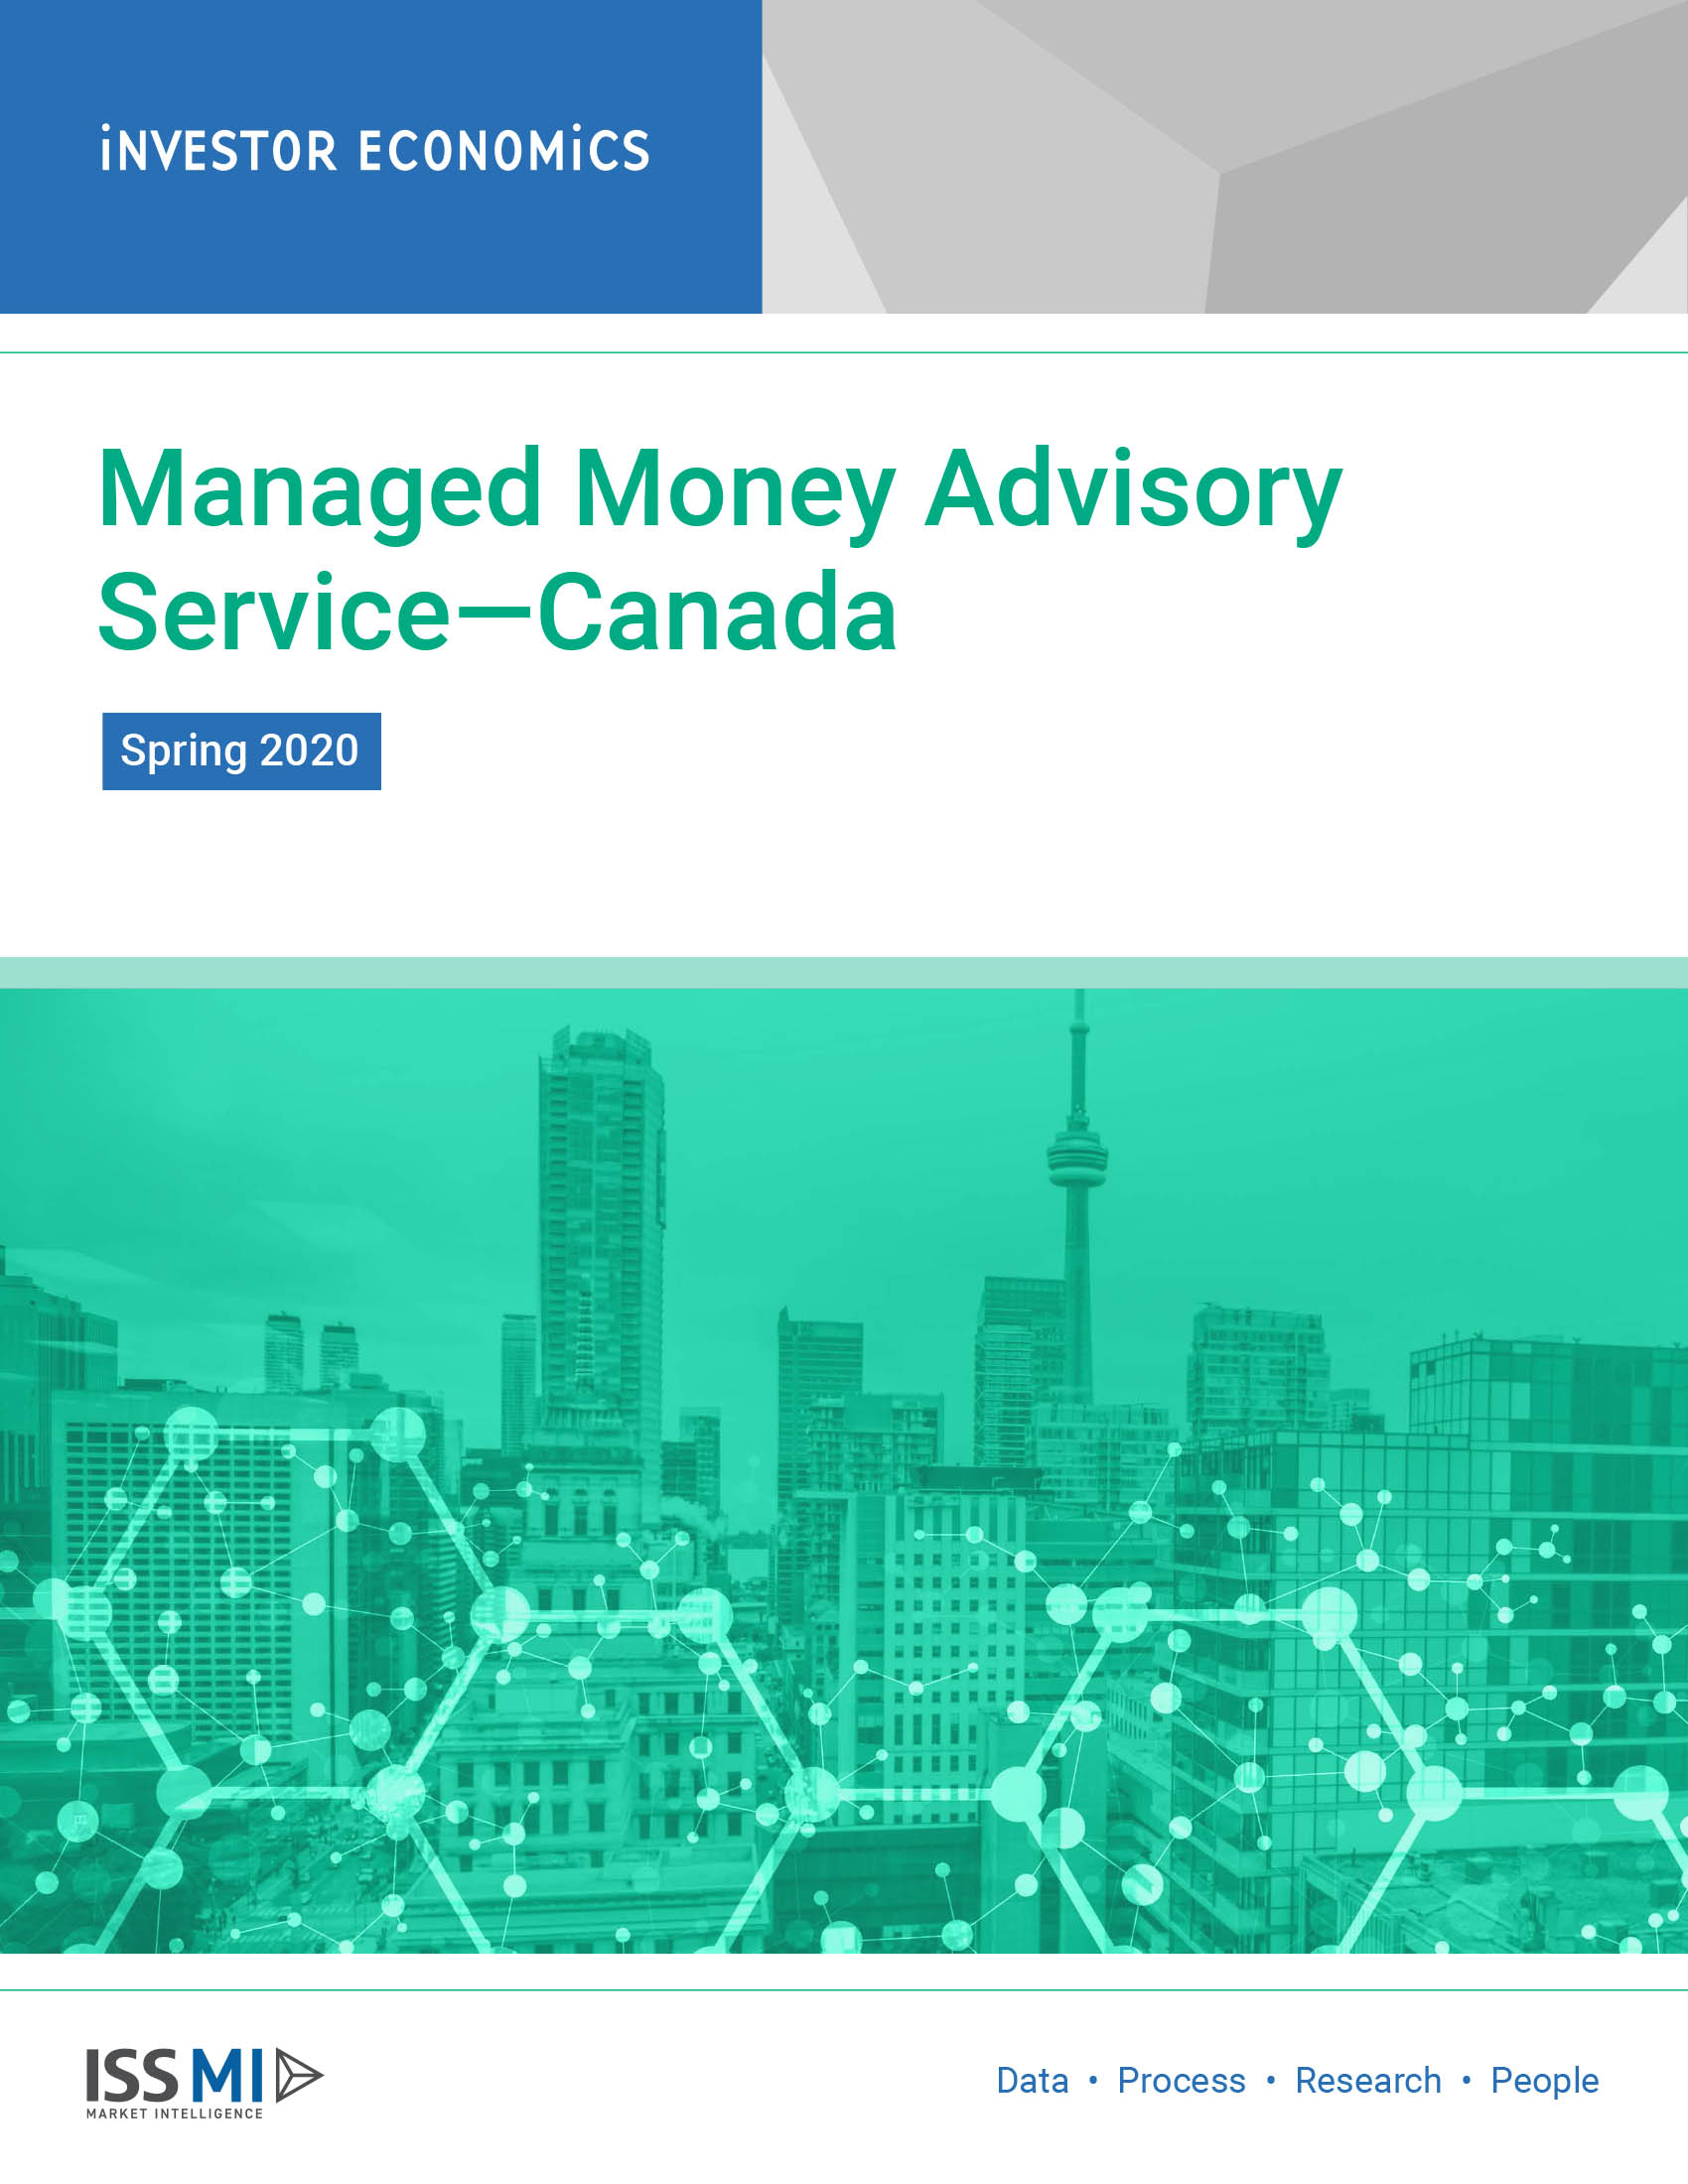 Managed Money Advisory Service Spring 2020